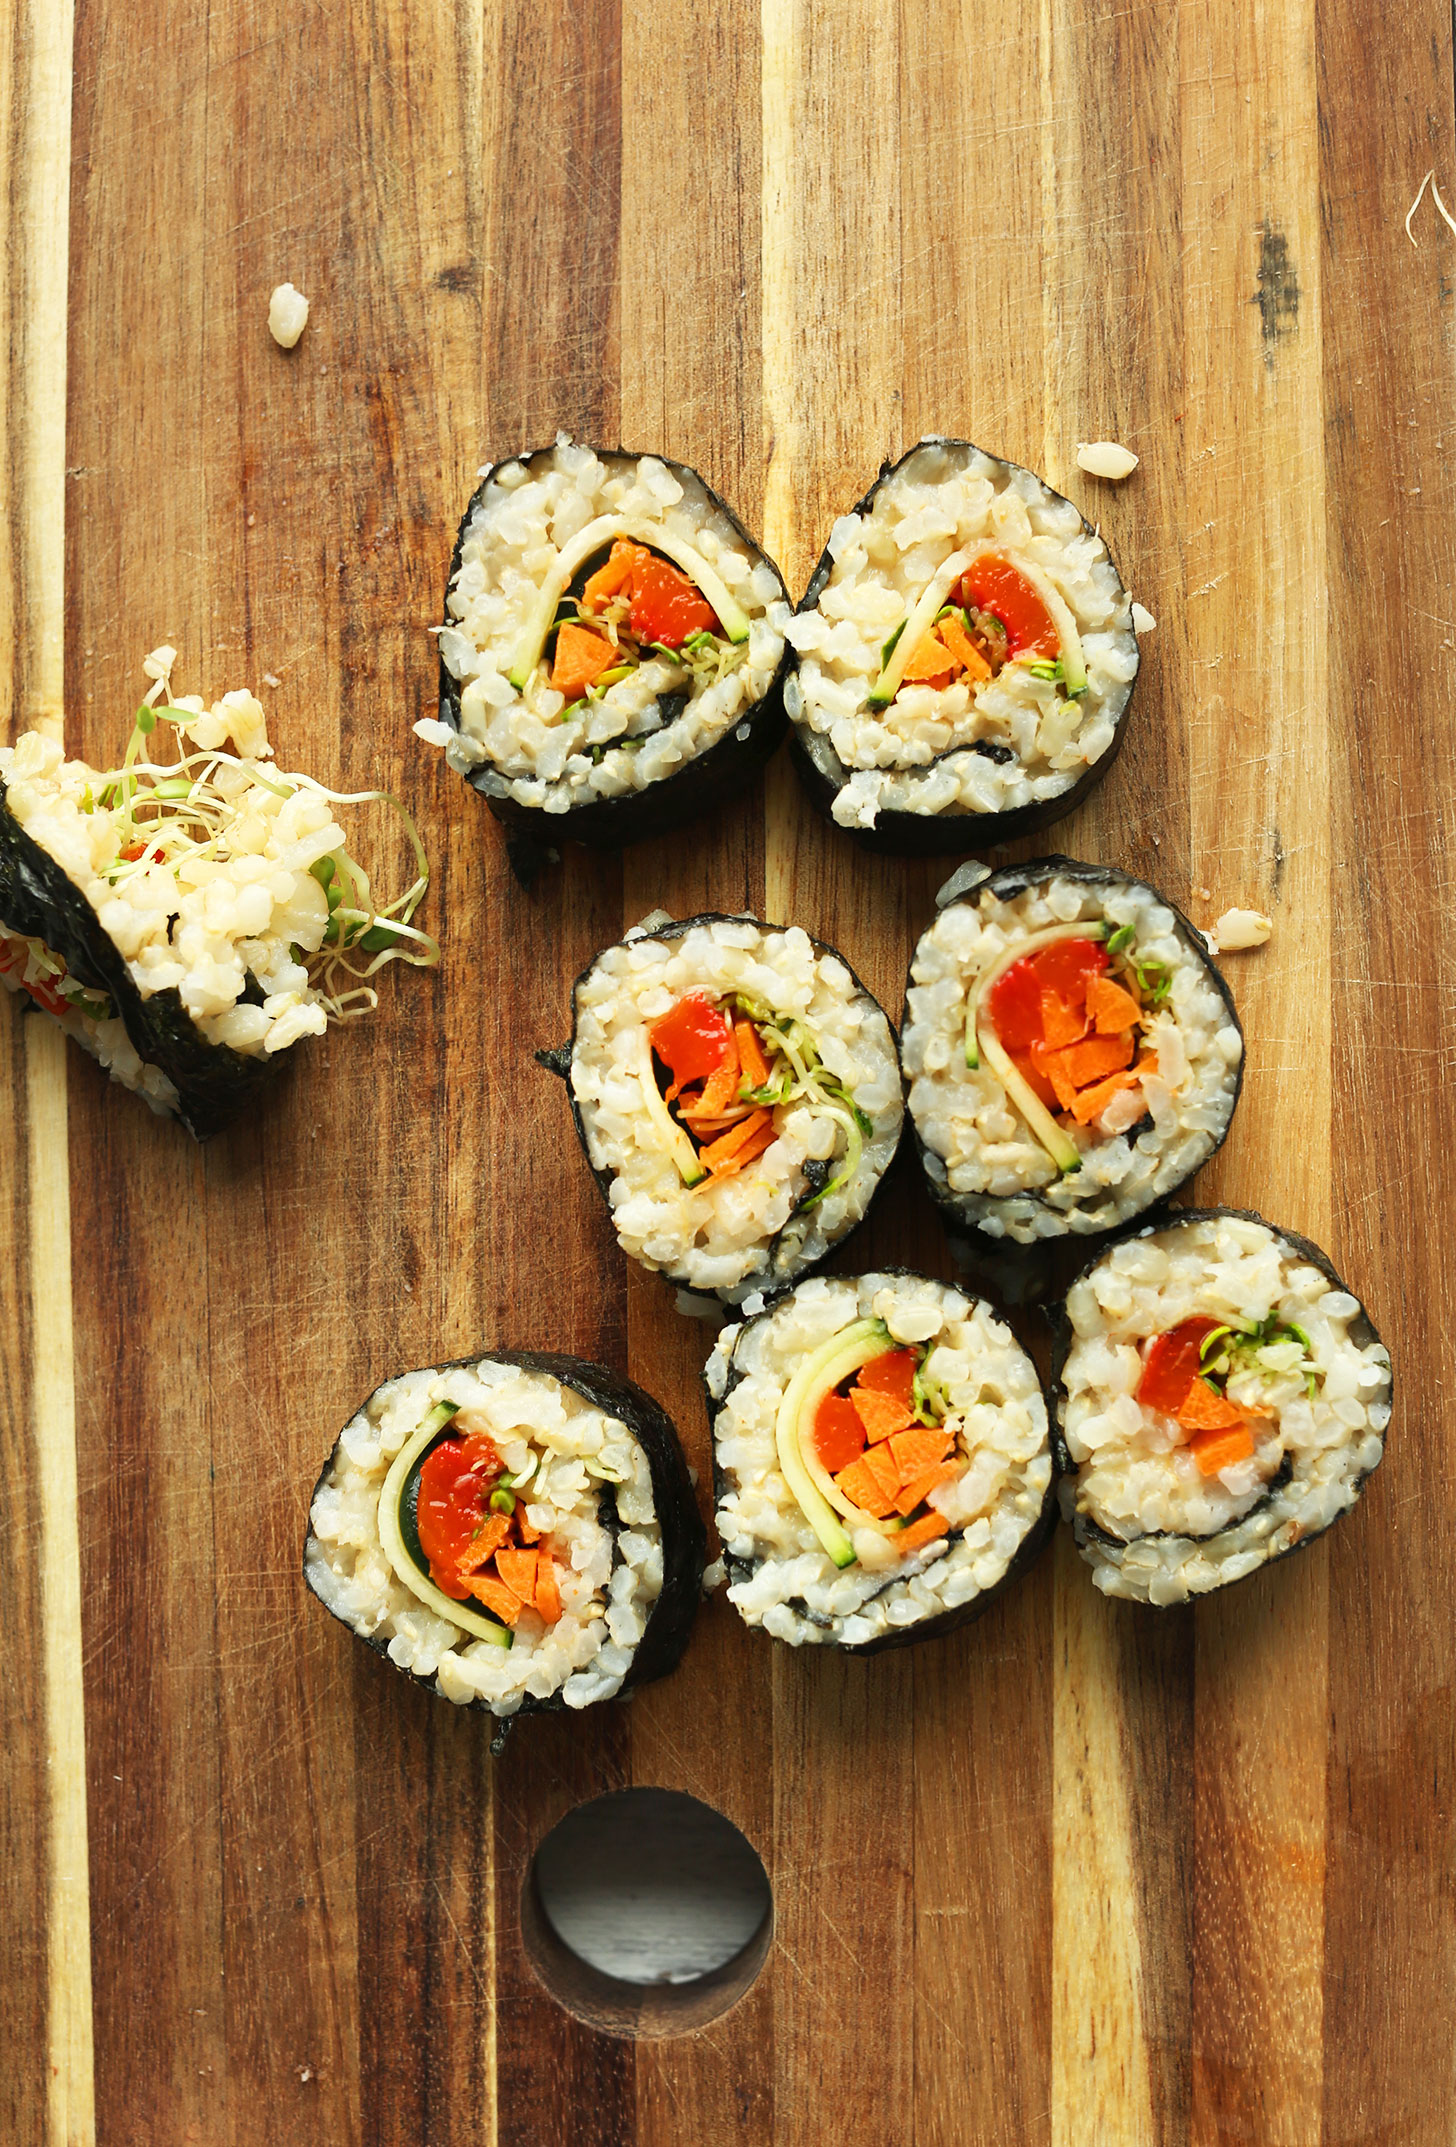 Rolls of homemade plant-based sushi on a cutting board